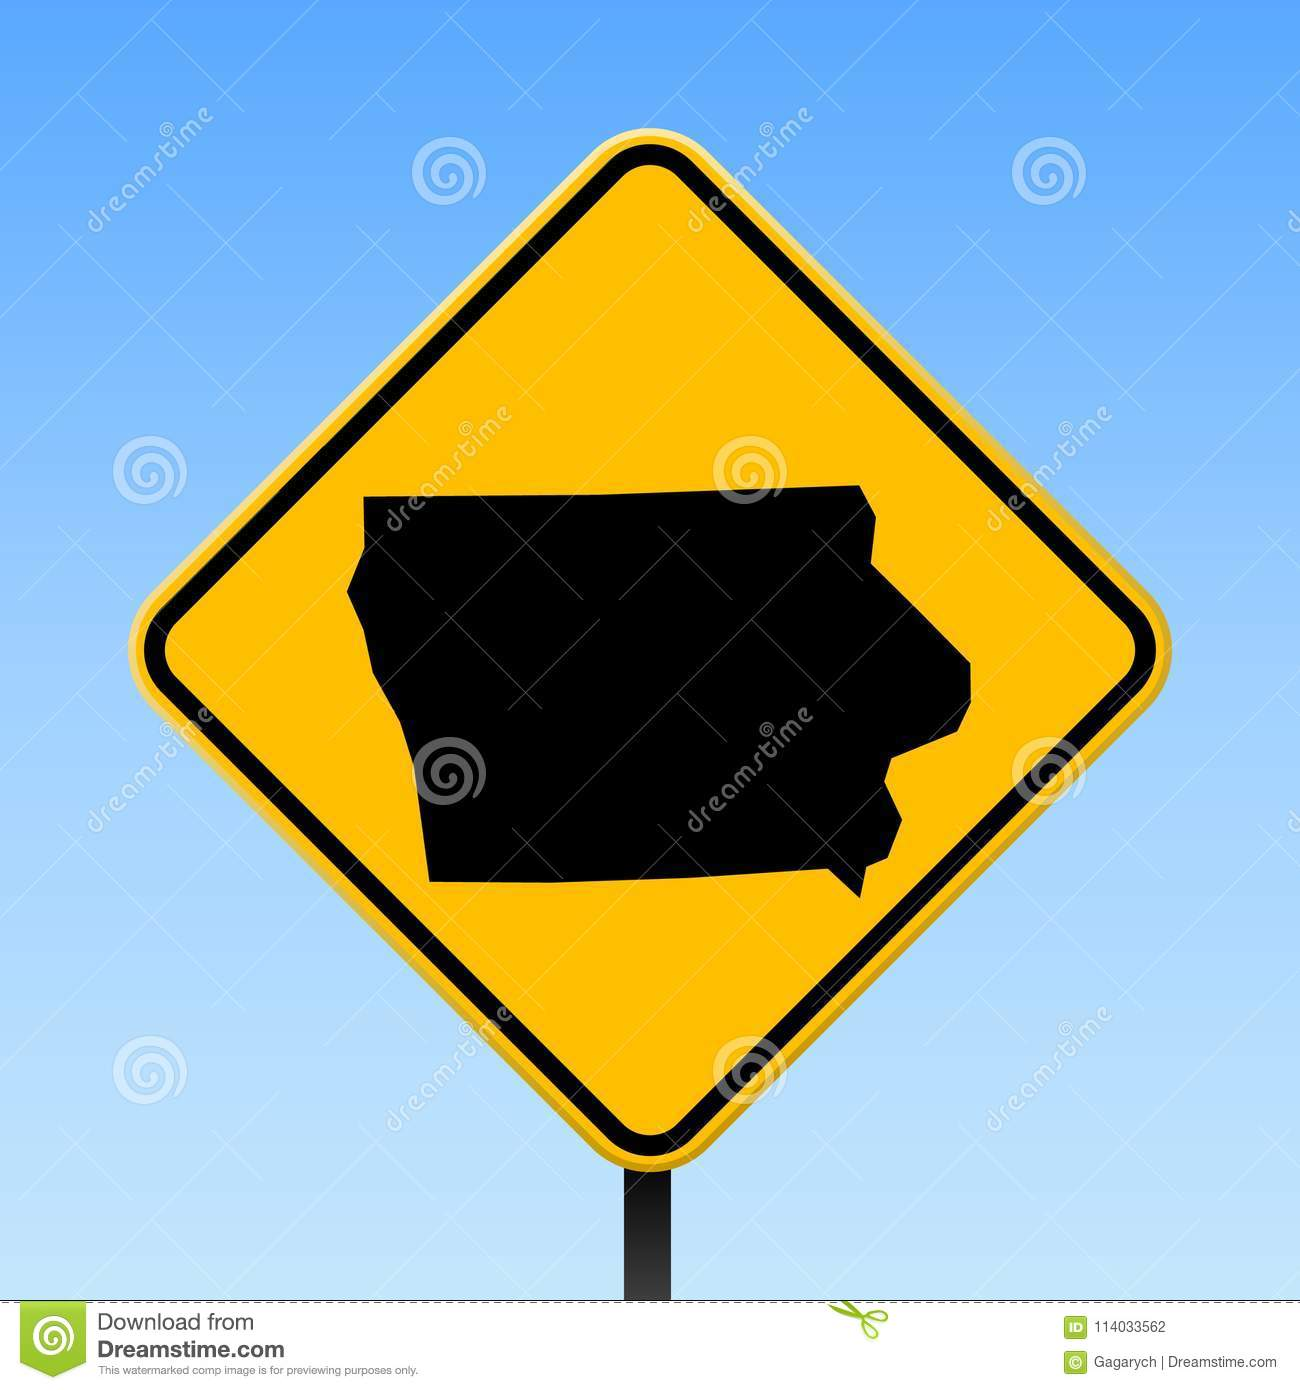 Iowa map on road sign  stock vector  Illustration of chart - 114033562